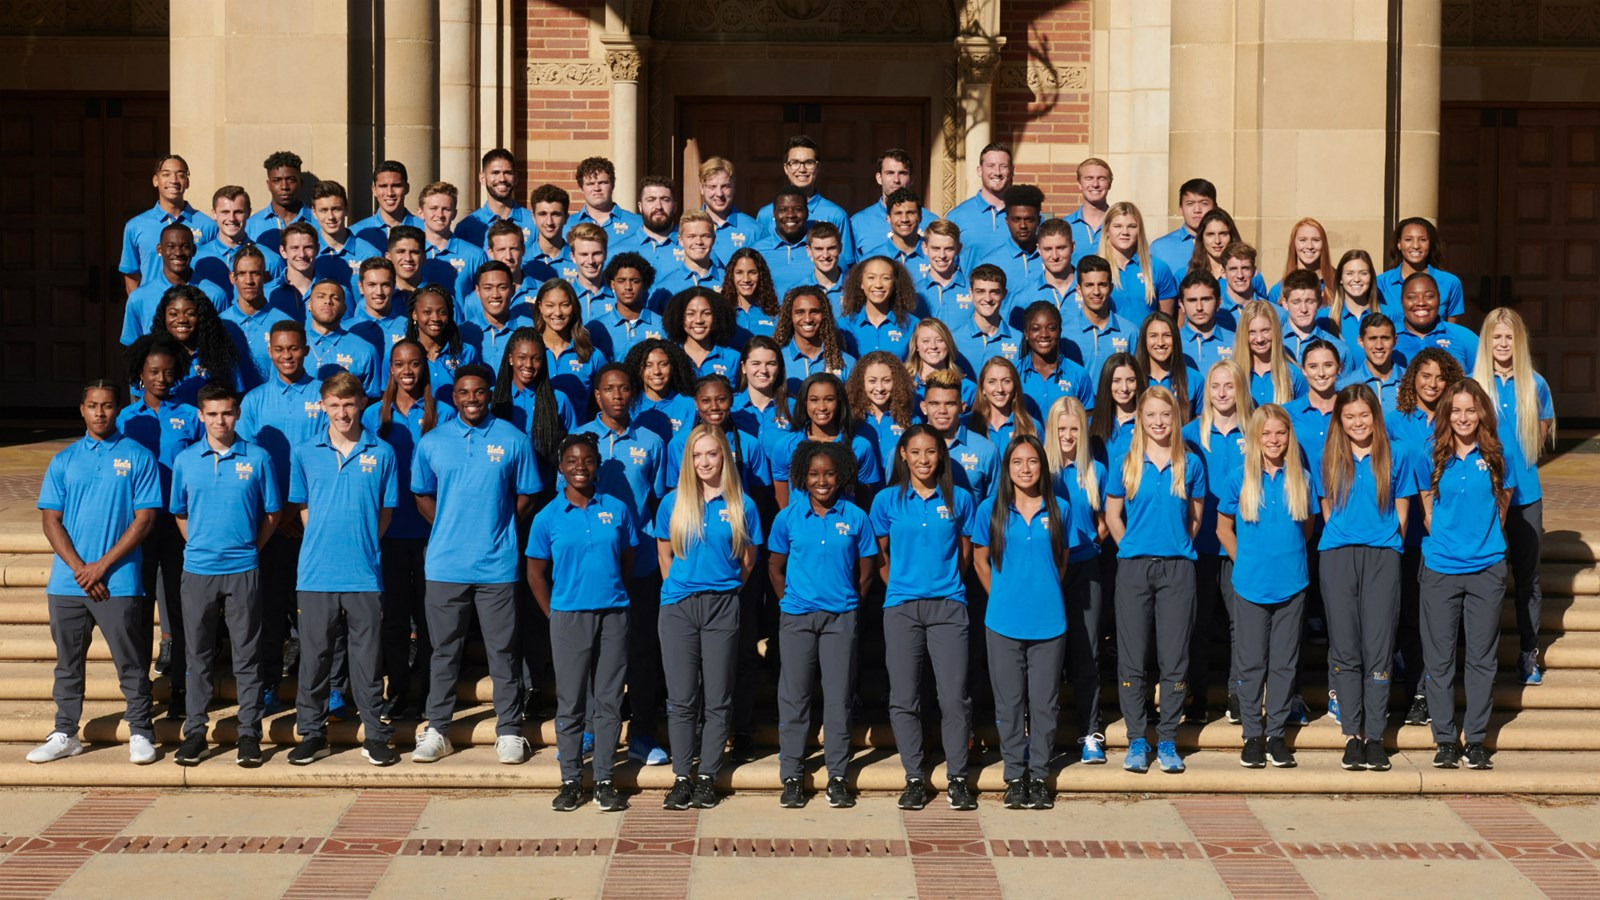 A look at the track and field team